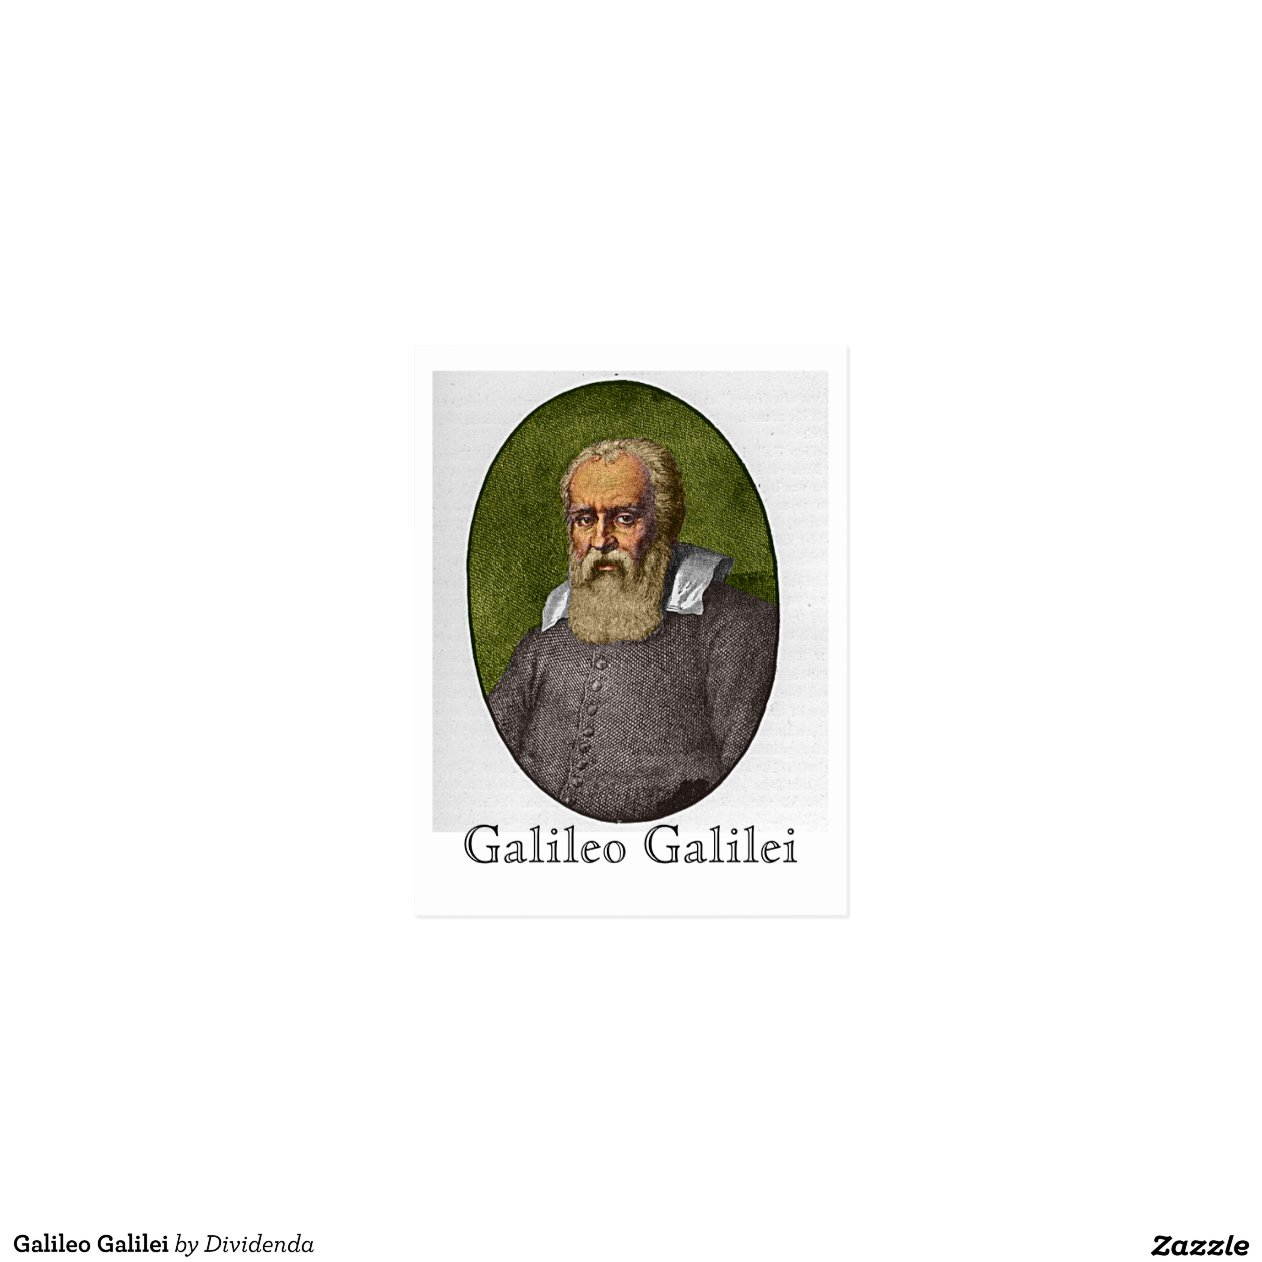 sample galileo galilei essay galileo and church essay about copernican revolution